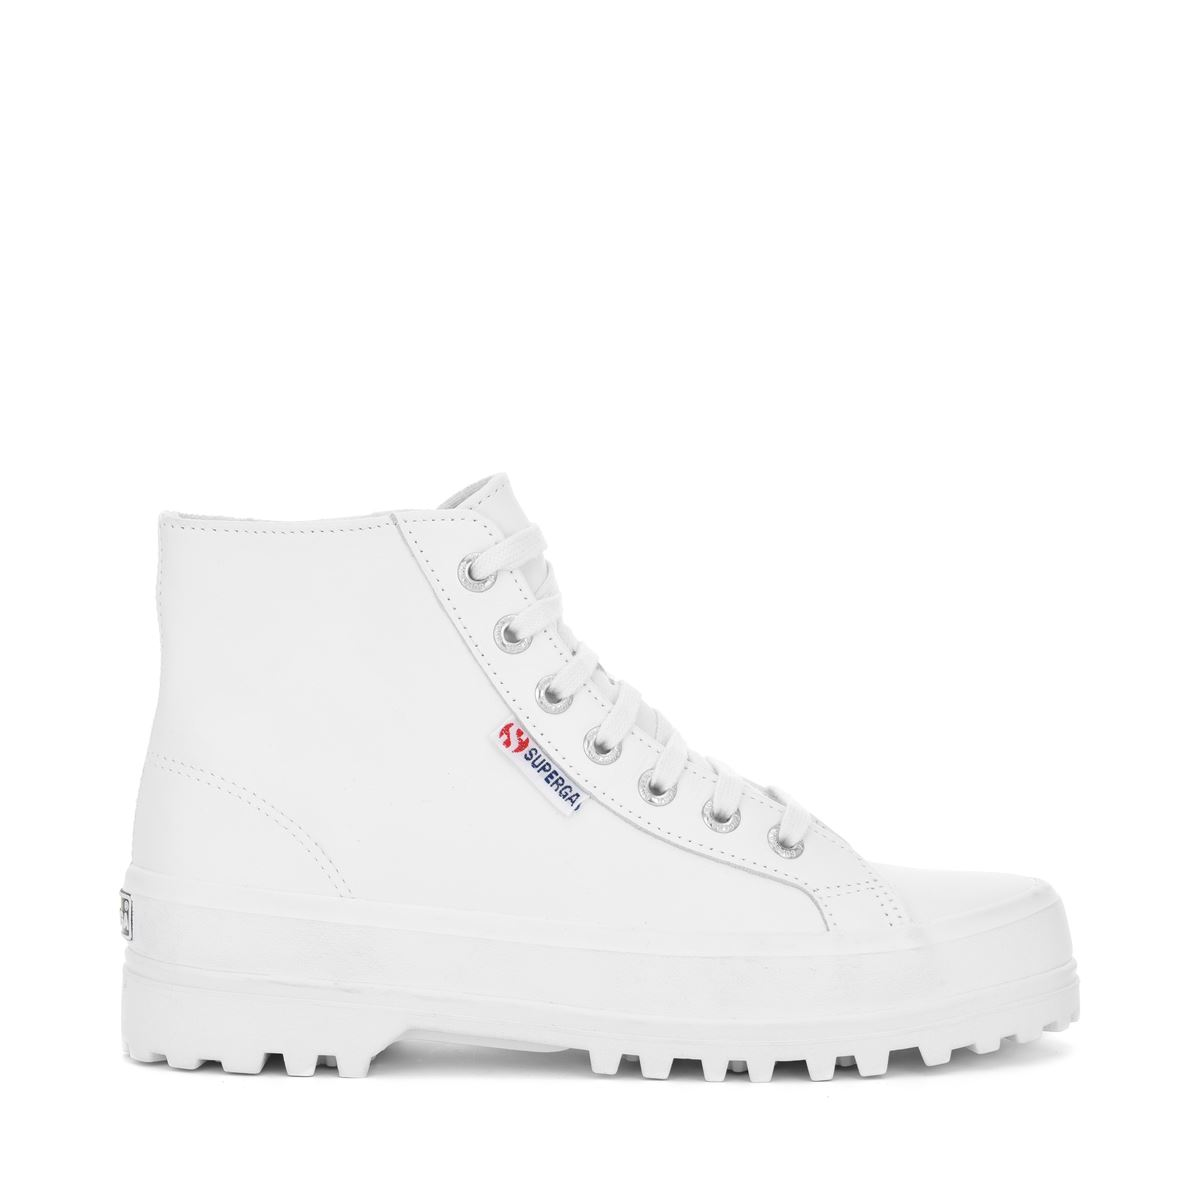 Italian Ankle Boots Superga for men and women-S41188W